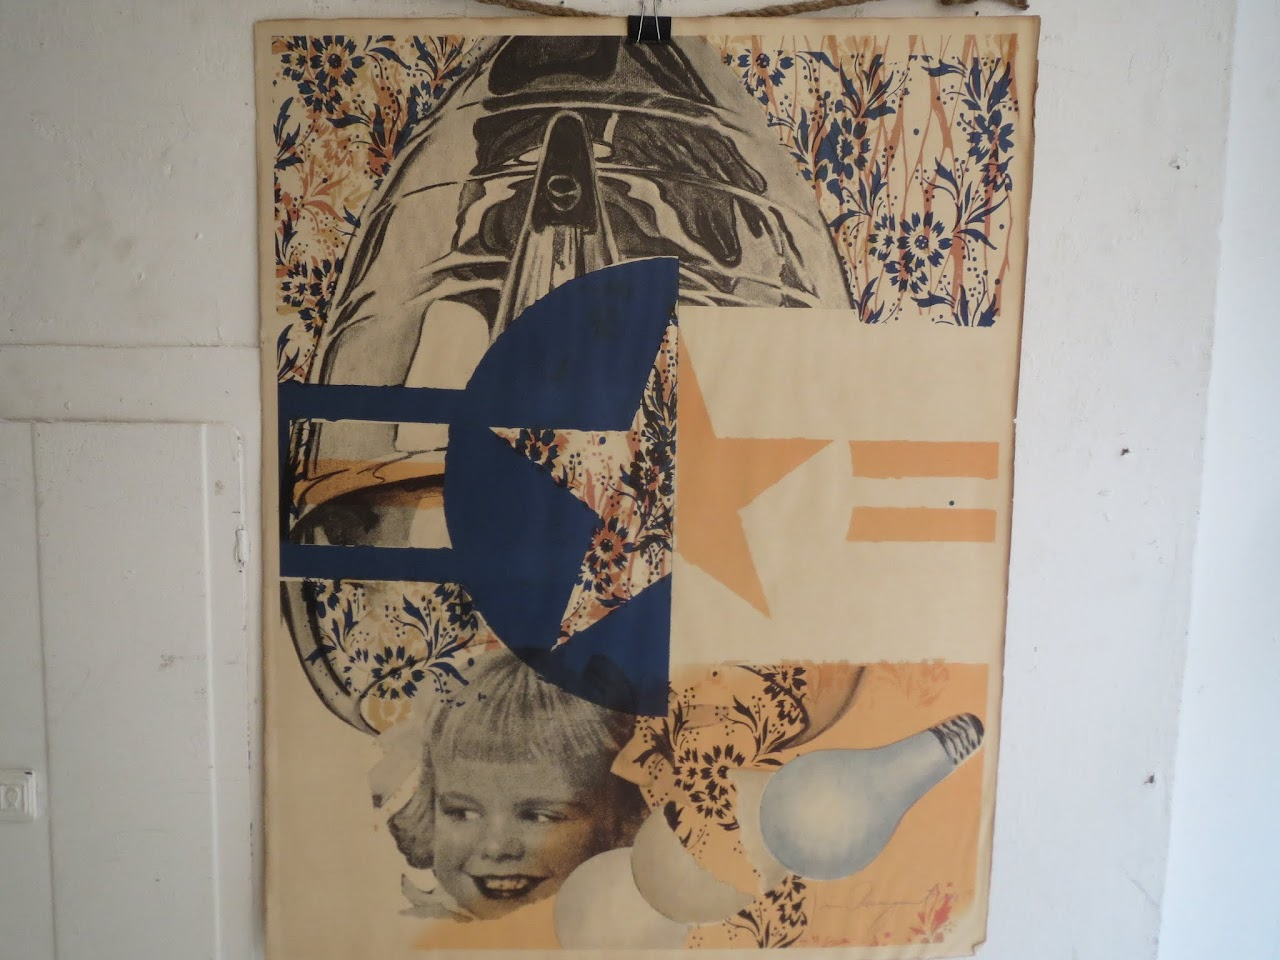 James Rosenquist Signed Lithograph